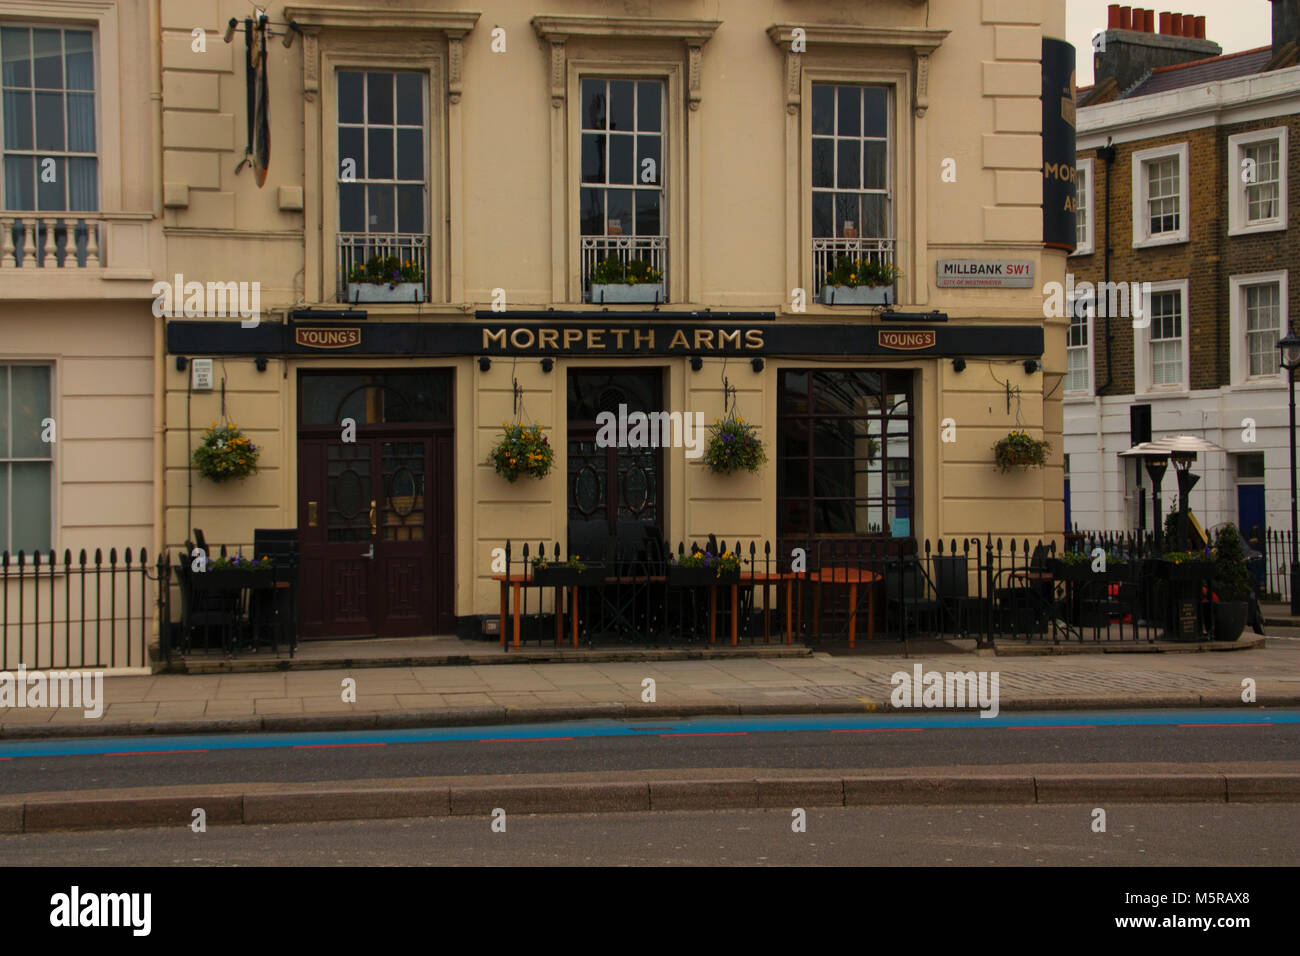 Colour Photograph of the Morpeth Arms, London, England, UK. Credit: London Snapper - Stock Image